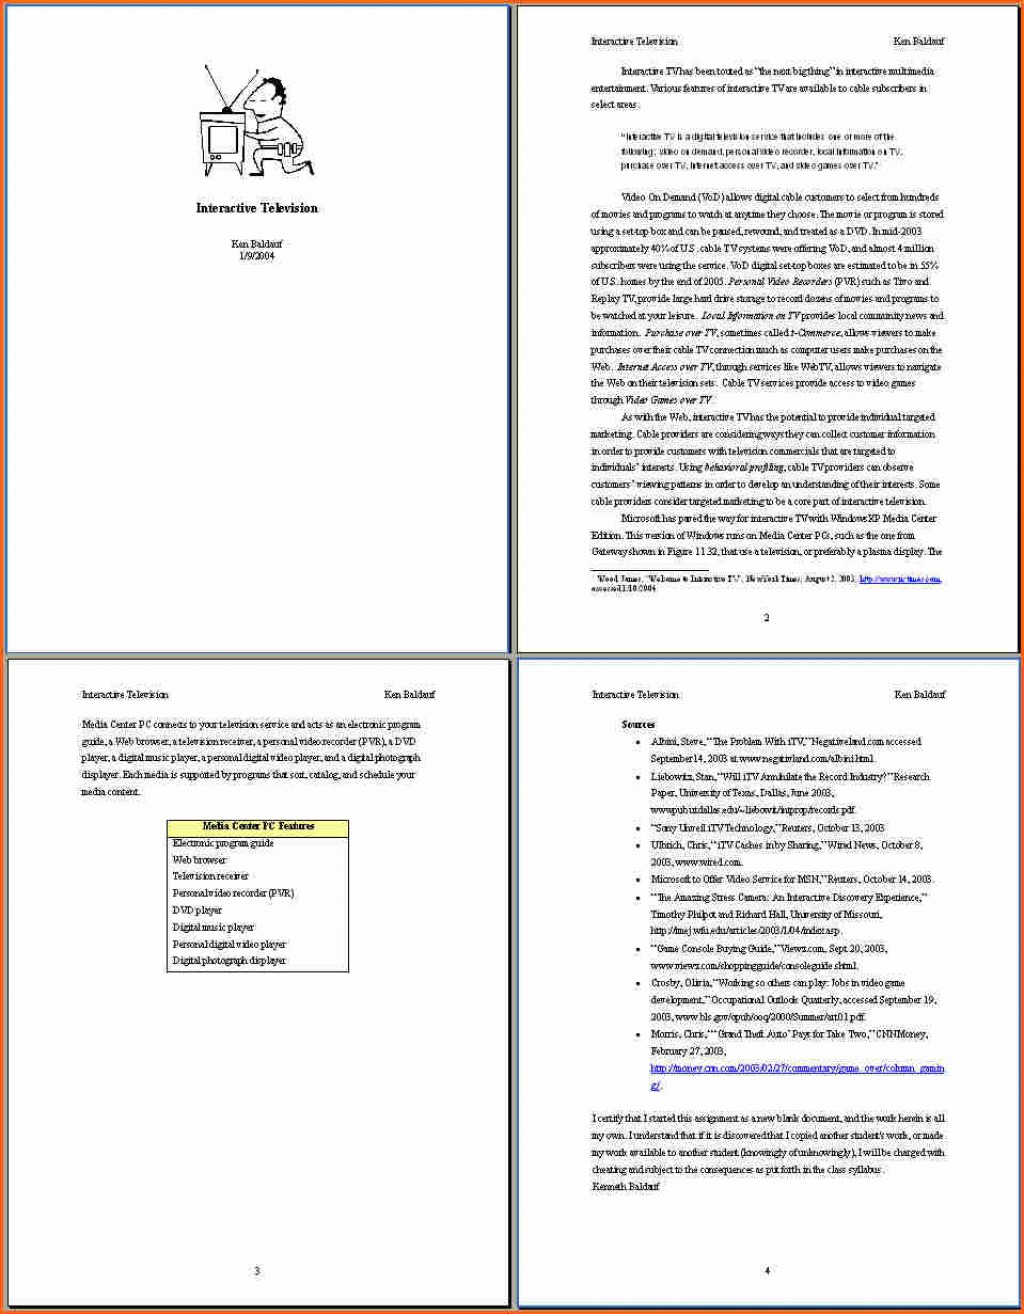 011 Apa Essay Template What Is An Style Paper A1 Best Outline Structure Format Word 2007 Large